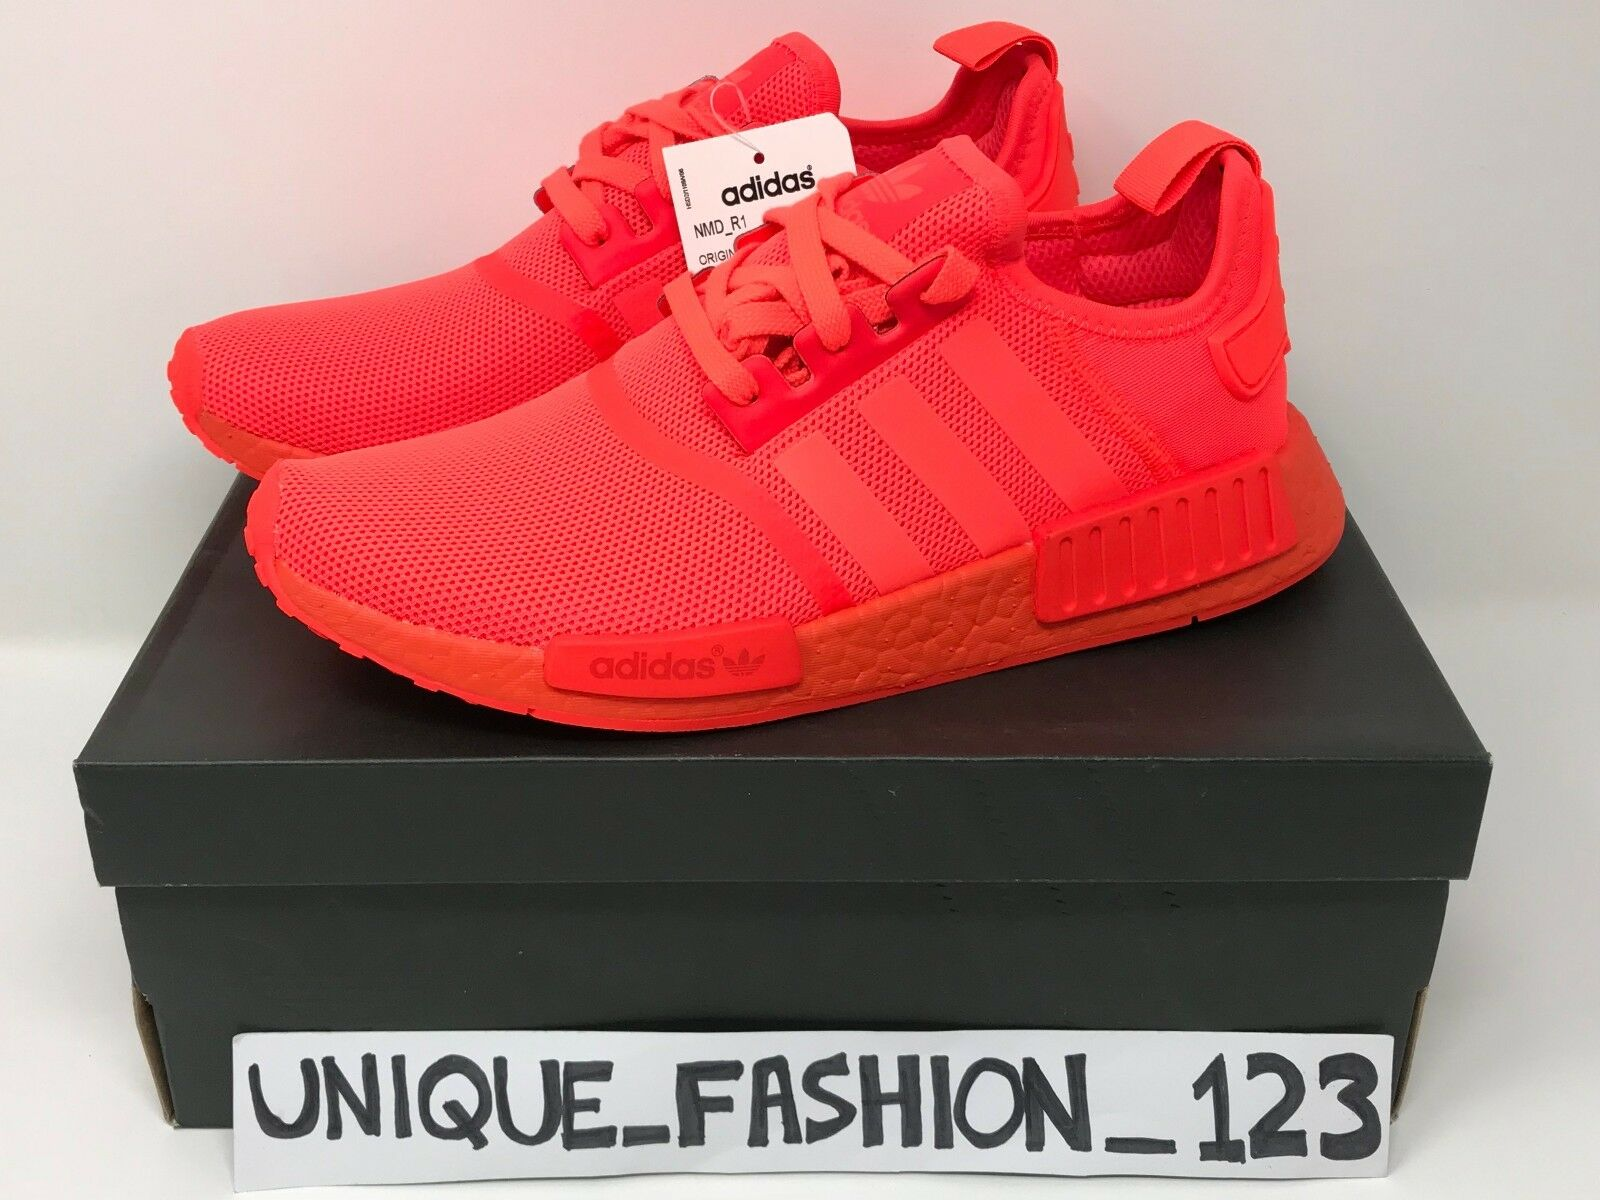 wholesale dealer 2c348 63f47 ADIDAS NMD R1 TRIPLE SOLAR RED UK 6 7 8 9 10 11 MESH S31507 LIMITED EDITION  2016